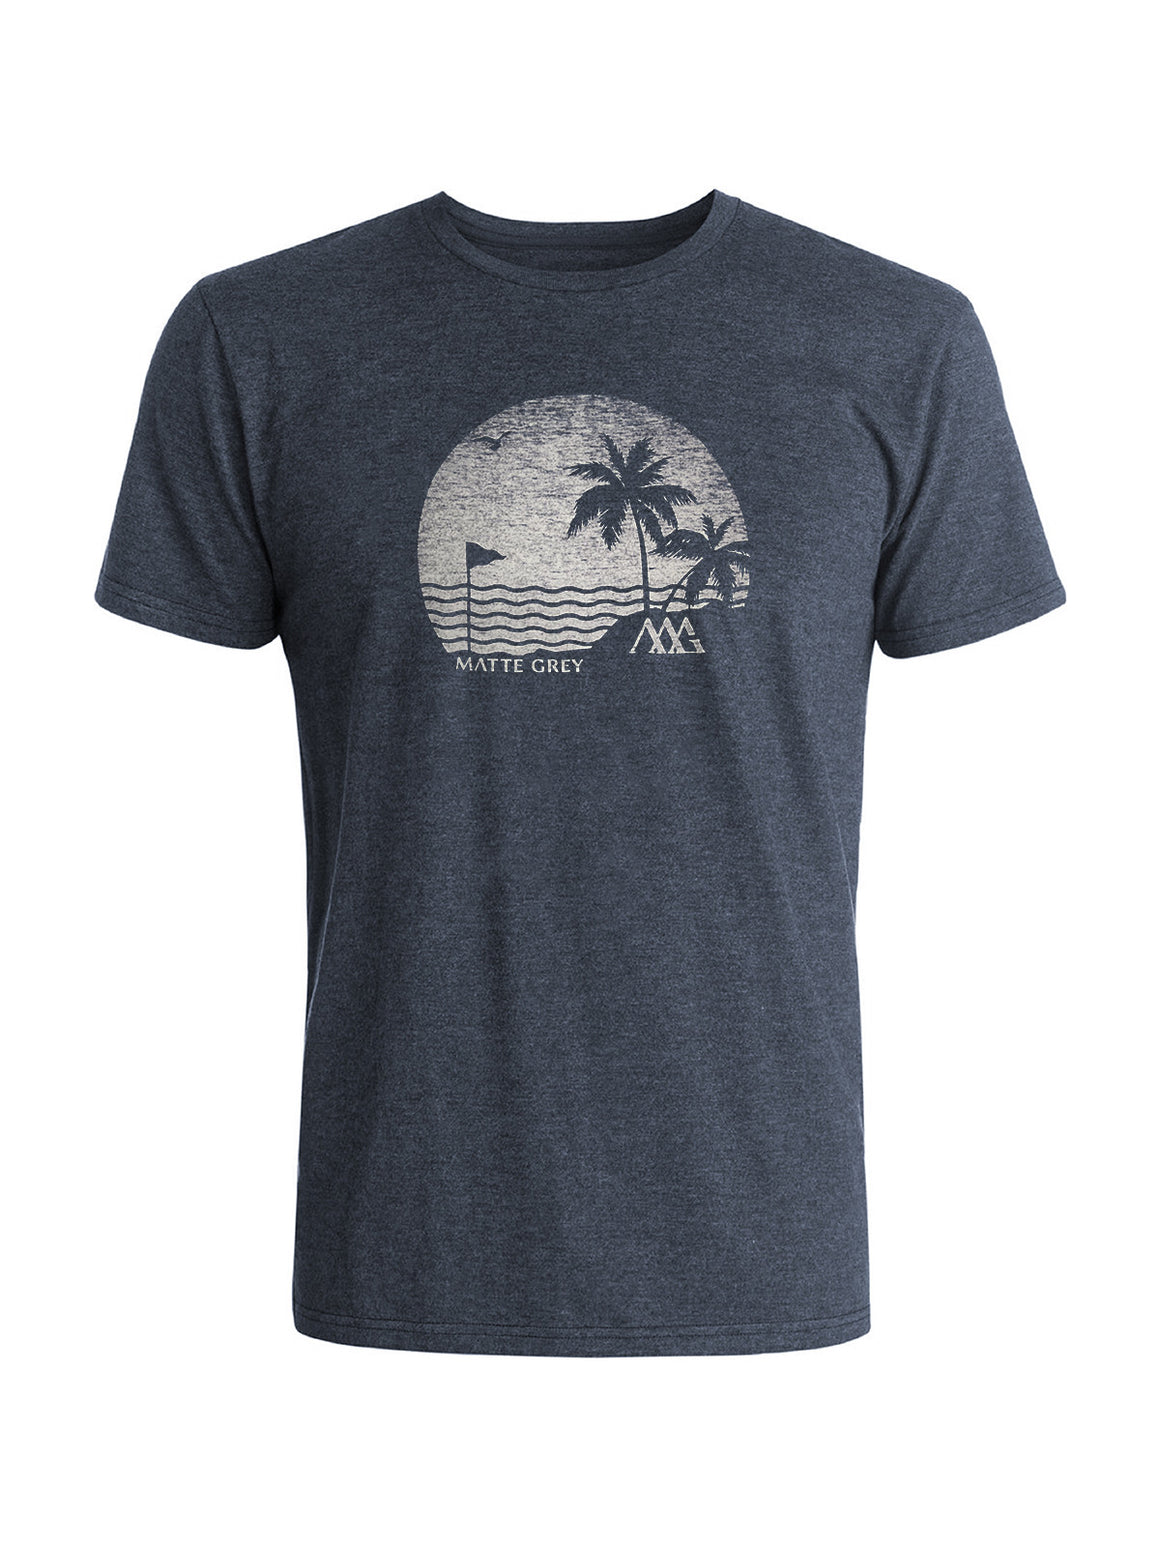 Island Front 9 Tee - Navy Heather (White)